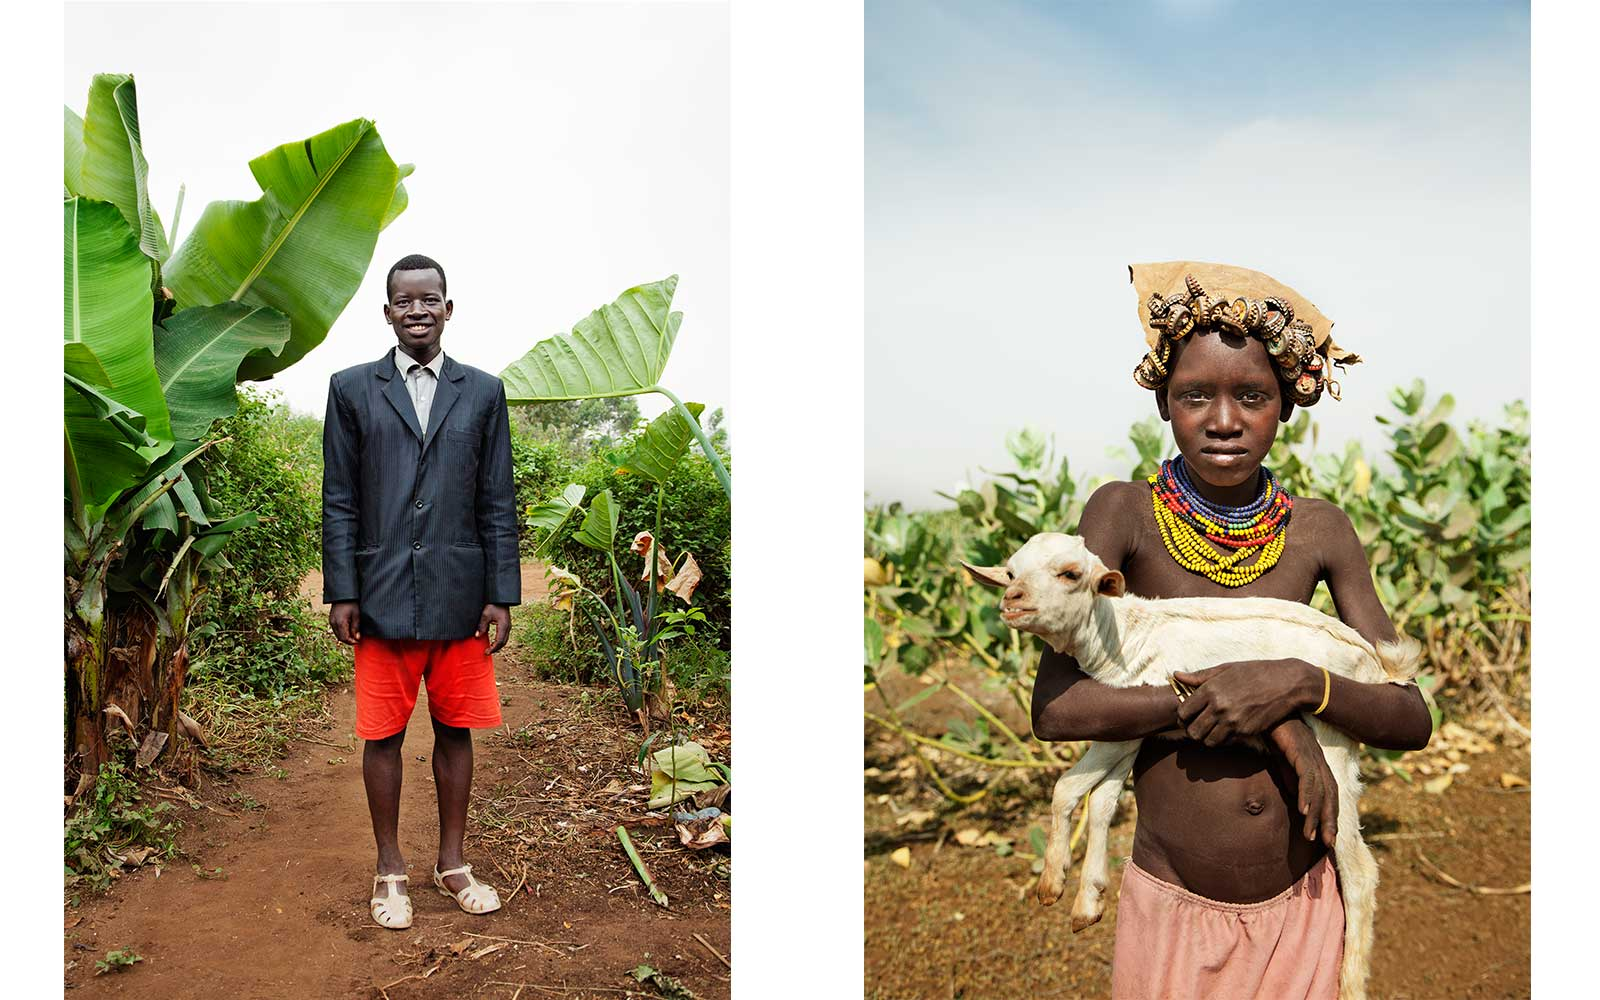 Left: Important Day, Ethiopia 2013. Daasanach Girl and Goat, Ethiopia 2013. From Circadian Landscape by Jessica Antola.